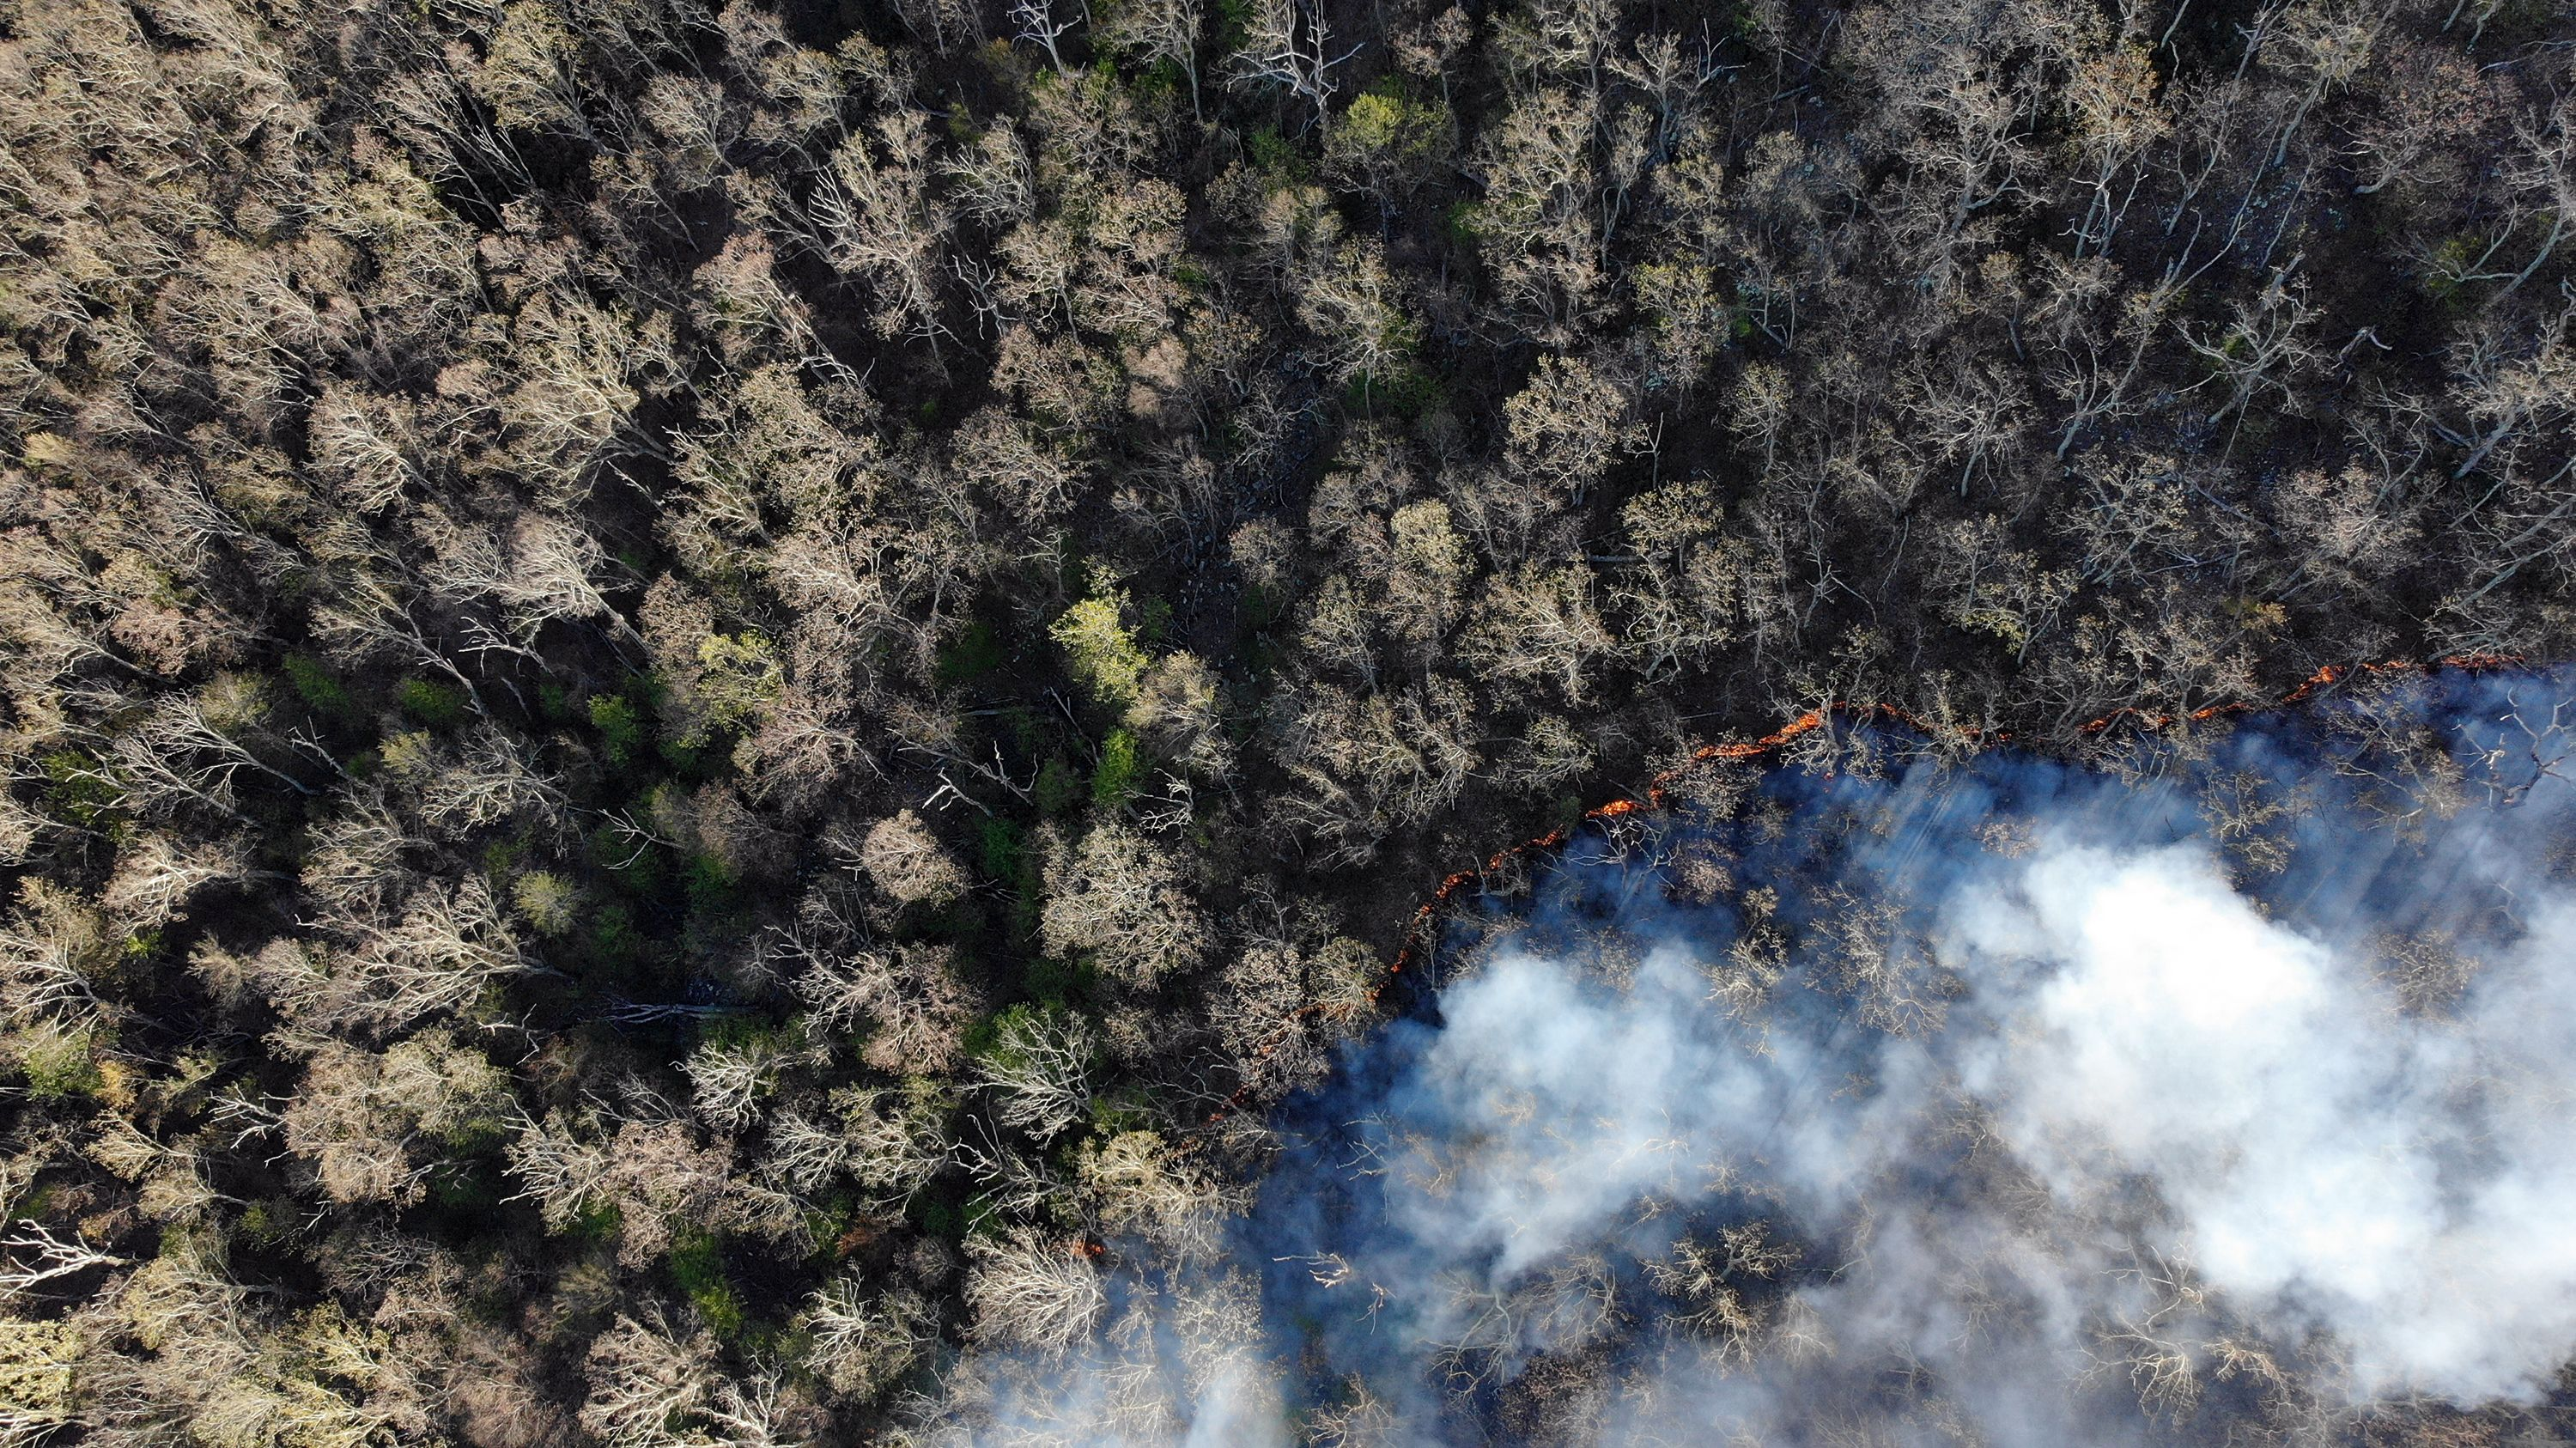 Aerial view looking down into a thick forest. White smoke rises from the thin line of orange fire that is advancing along the ground during a controlled burn.